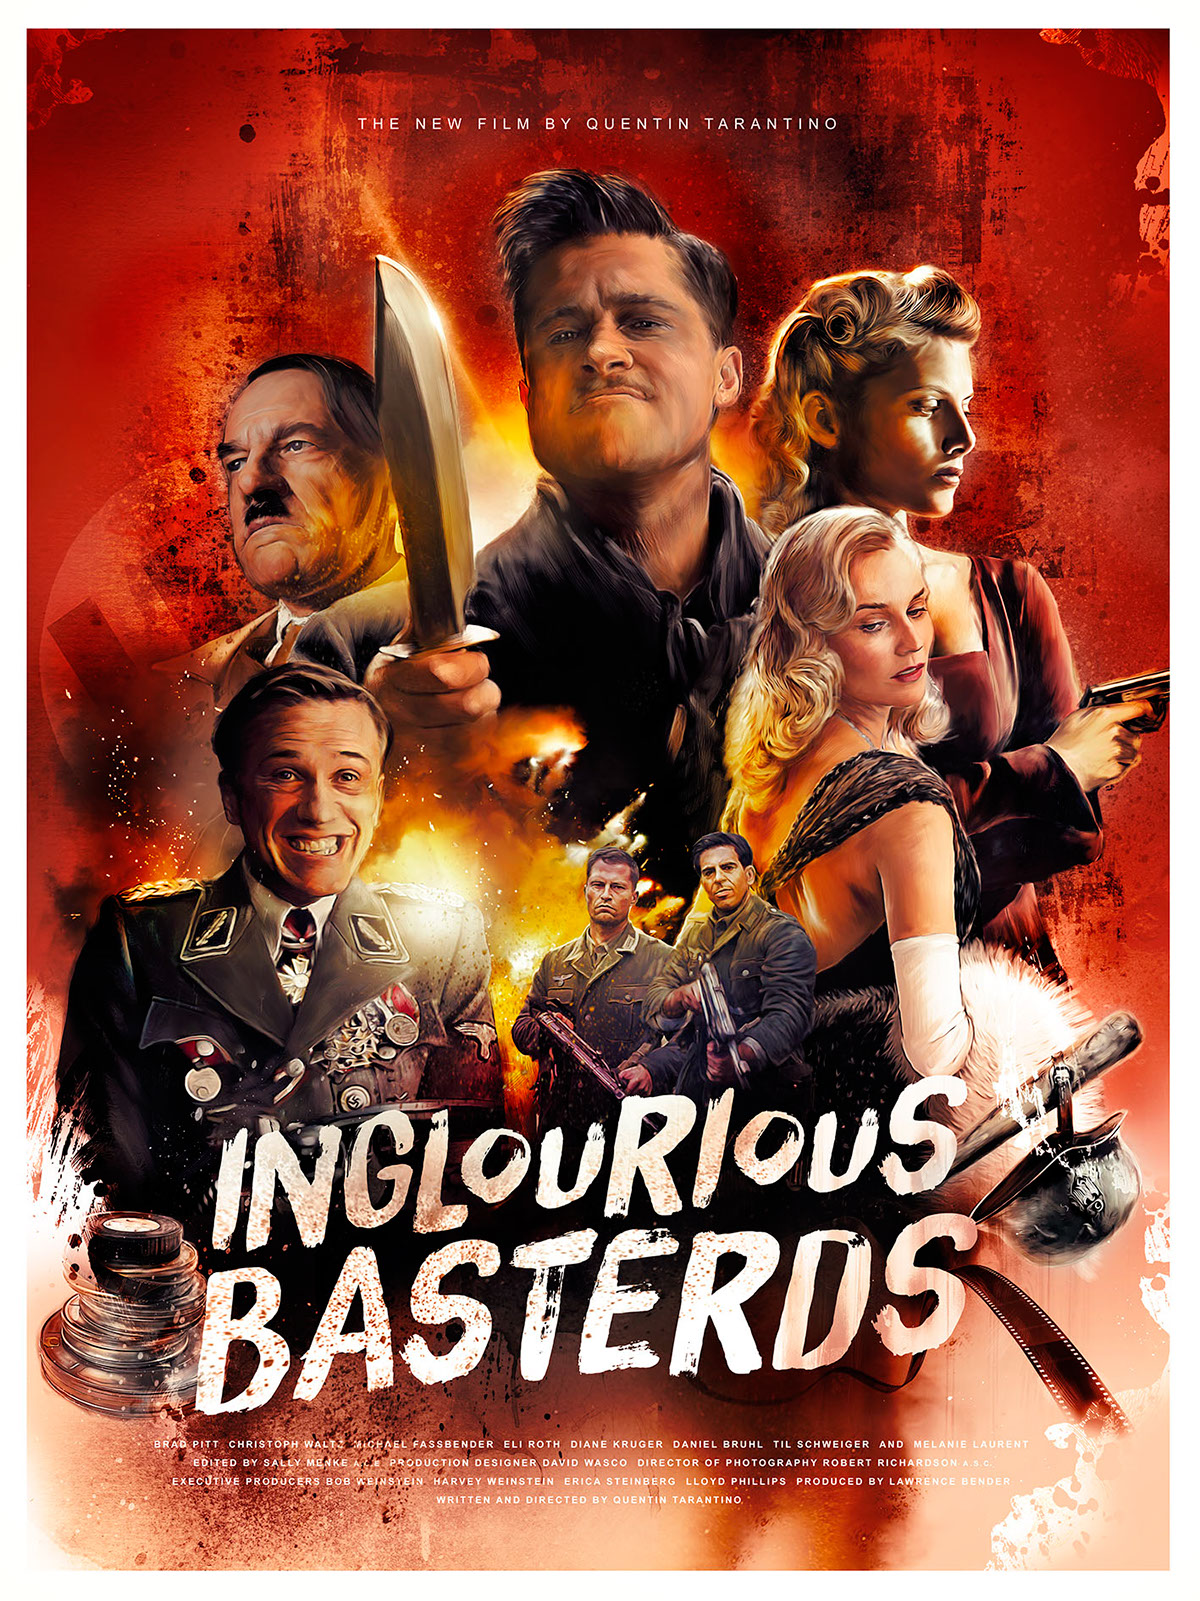 Inglourious Basterds on Behance